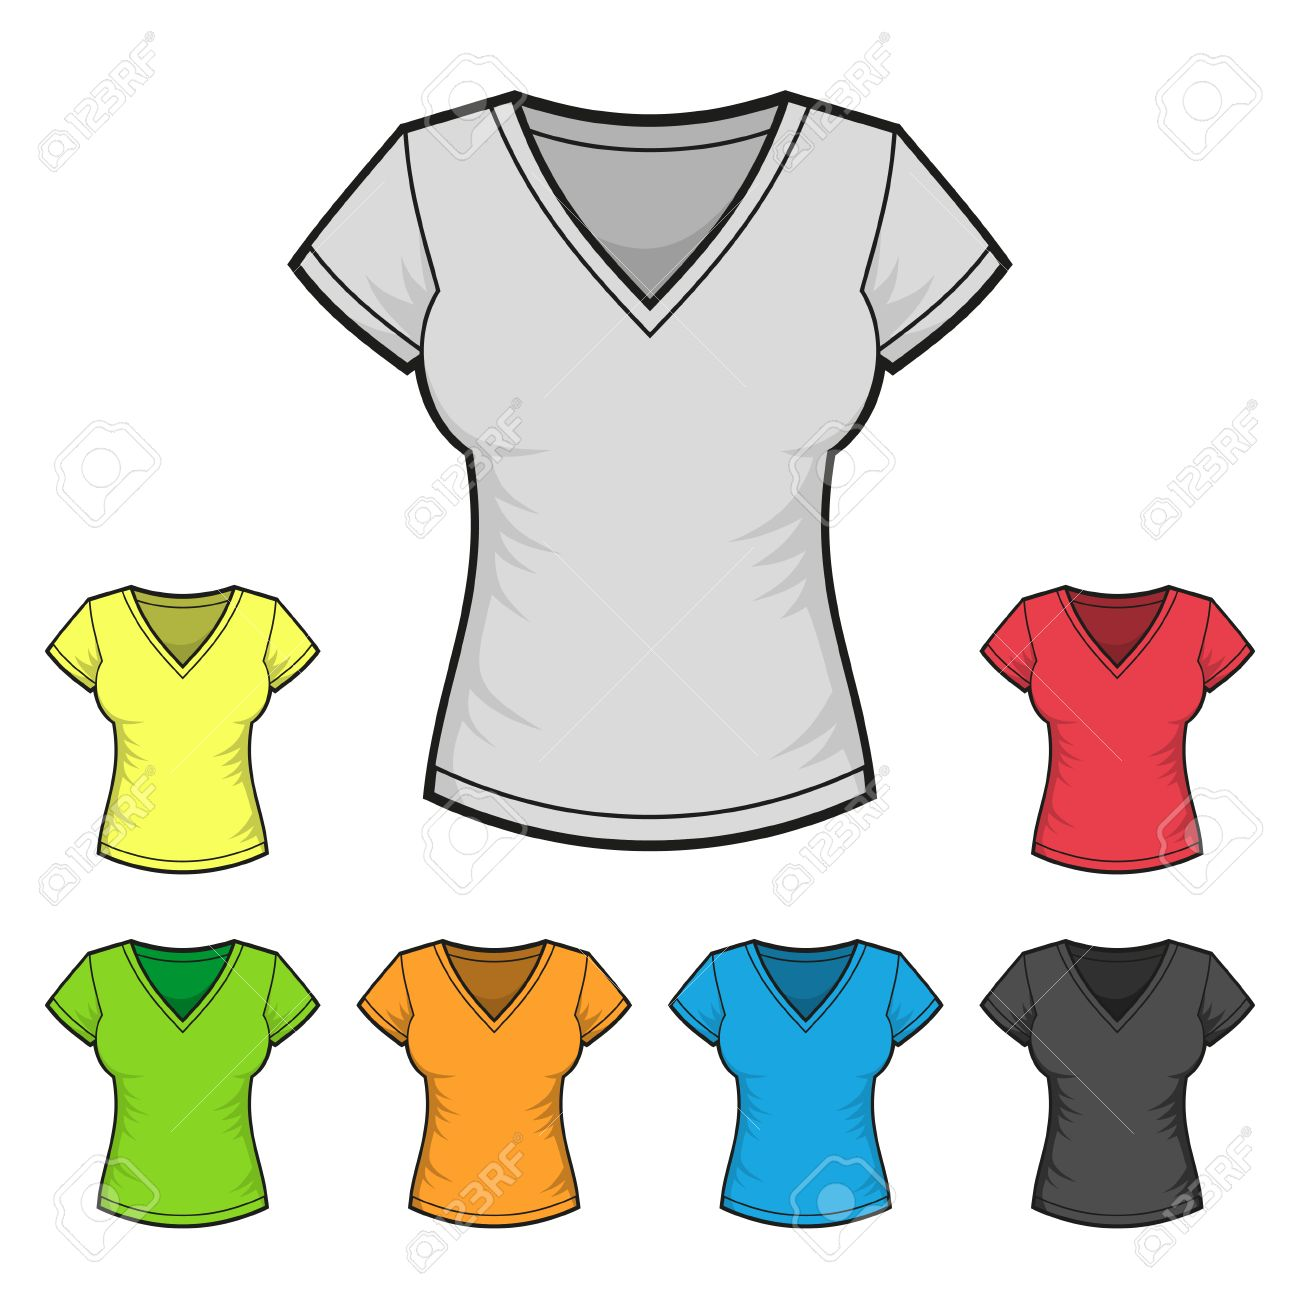 975154bc Women's V-neck T-shirt Design Template Color Set Royalty Free ...